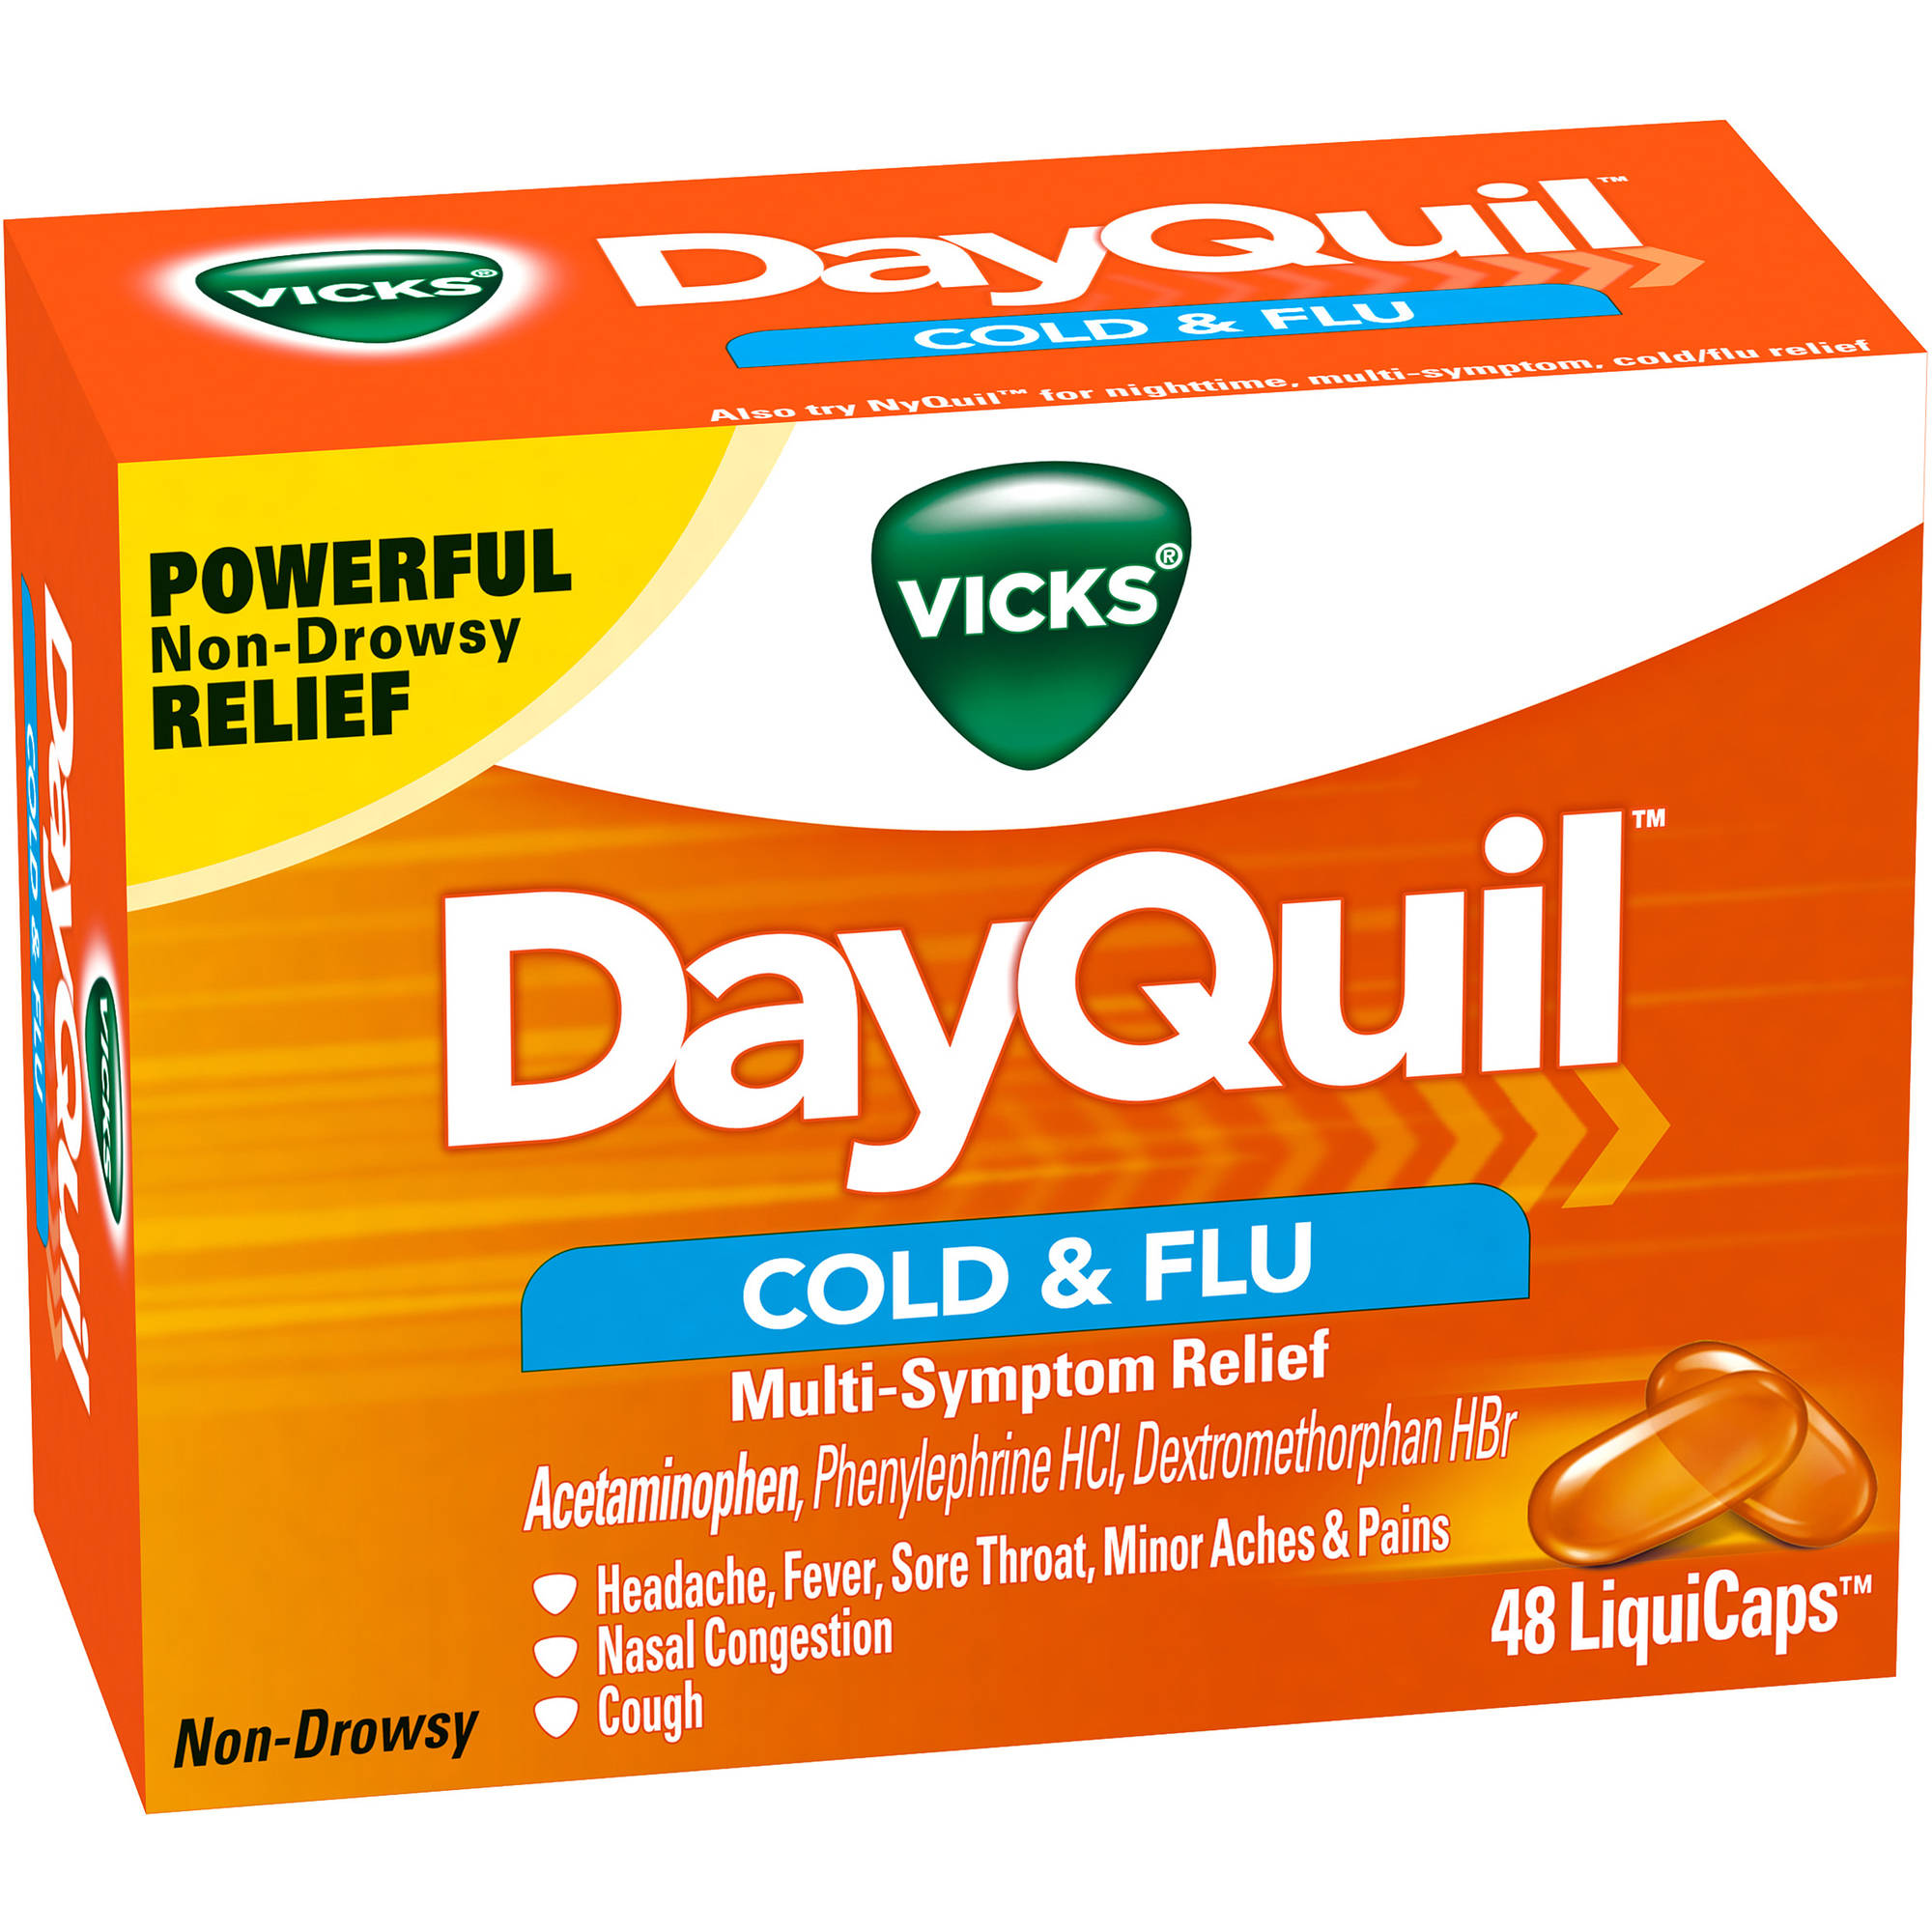 Vicks DayQuil Cold & Flu Multi-Symptom Relief LiquiCaps, 48 count